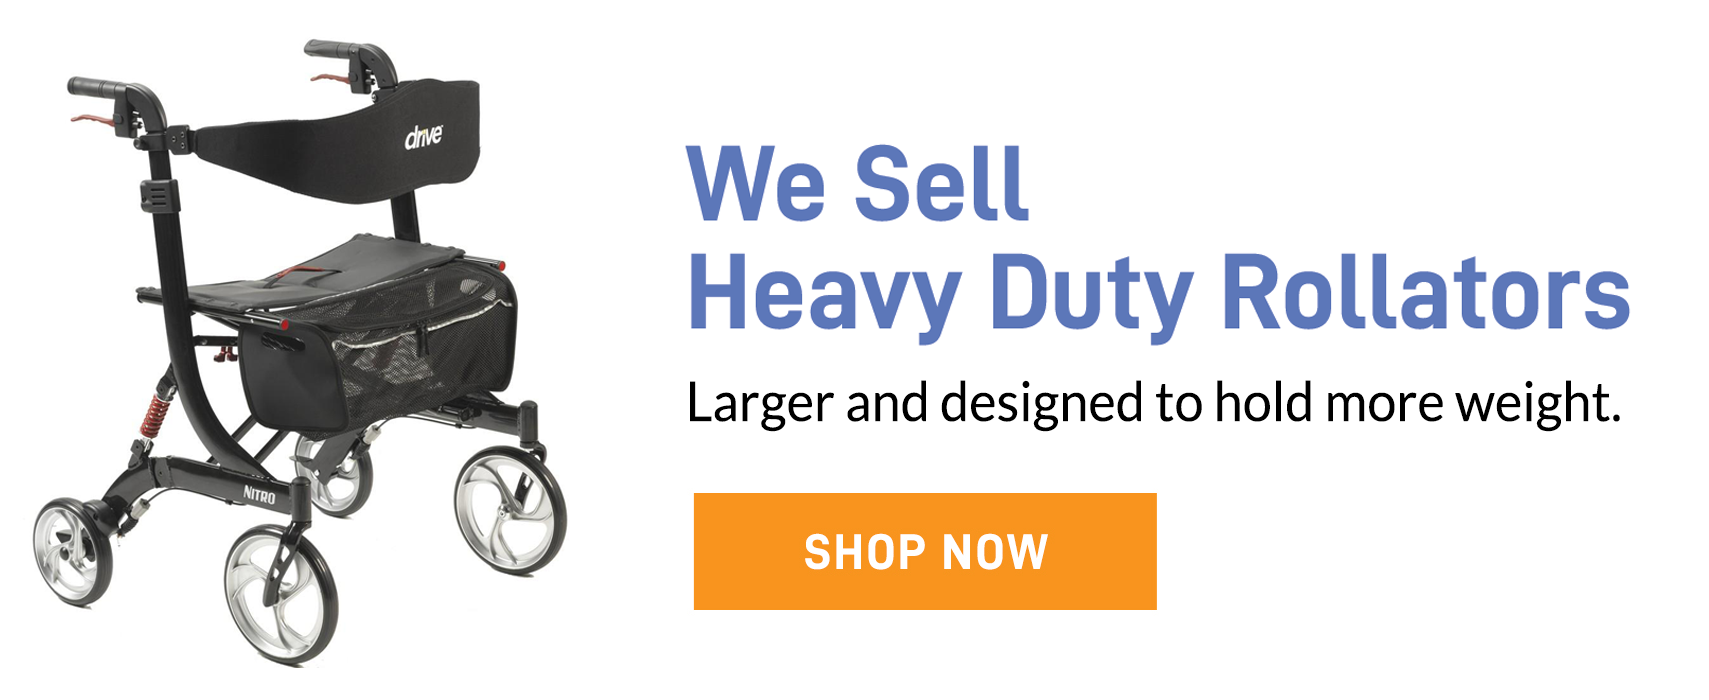 We sell Heavy Duty Rollators